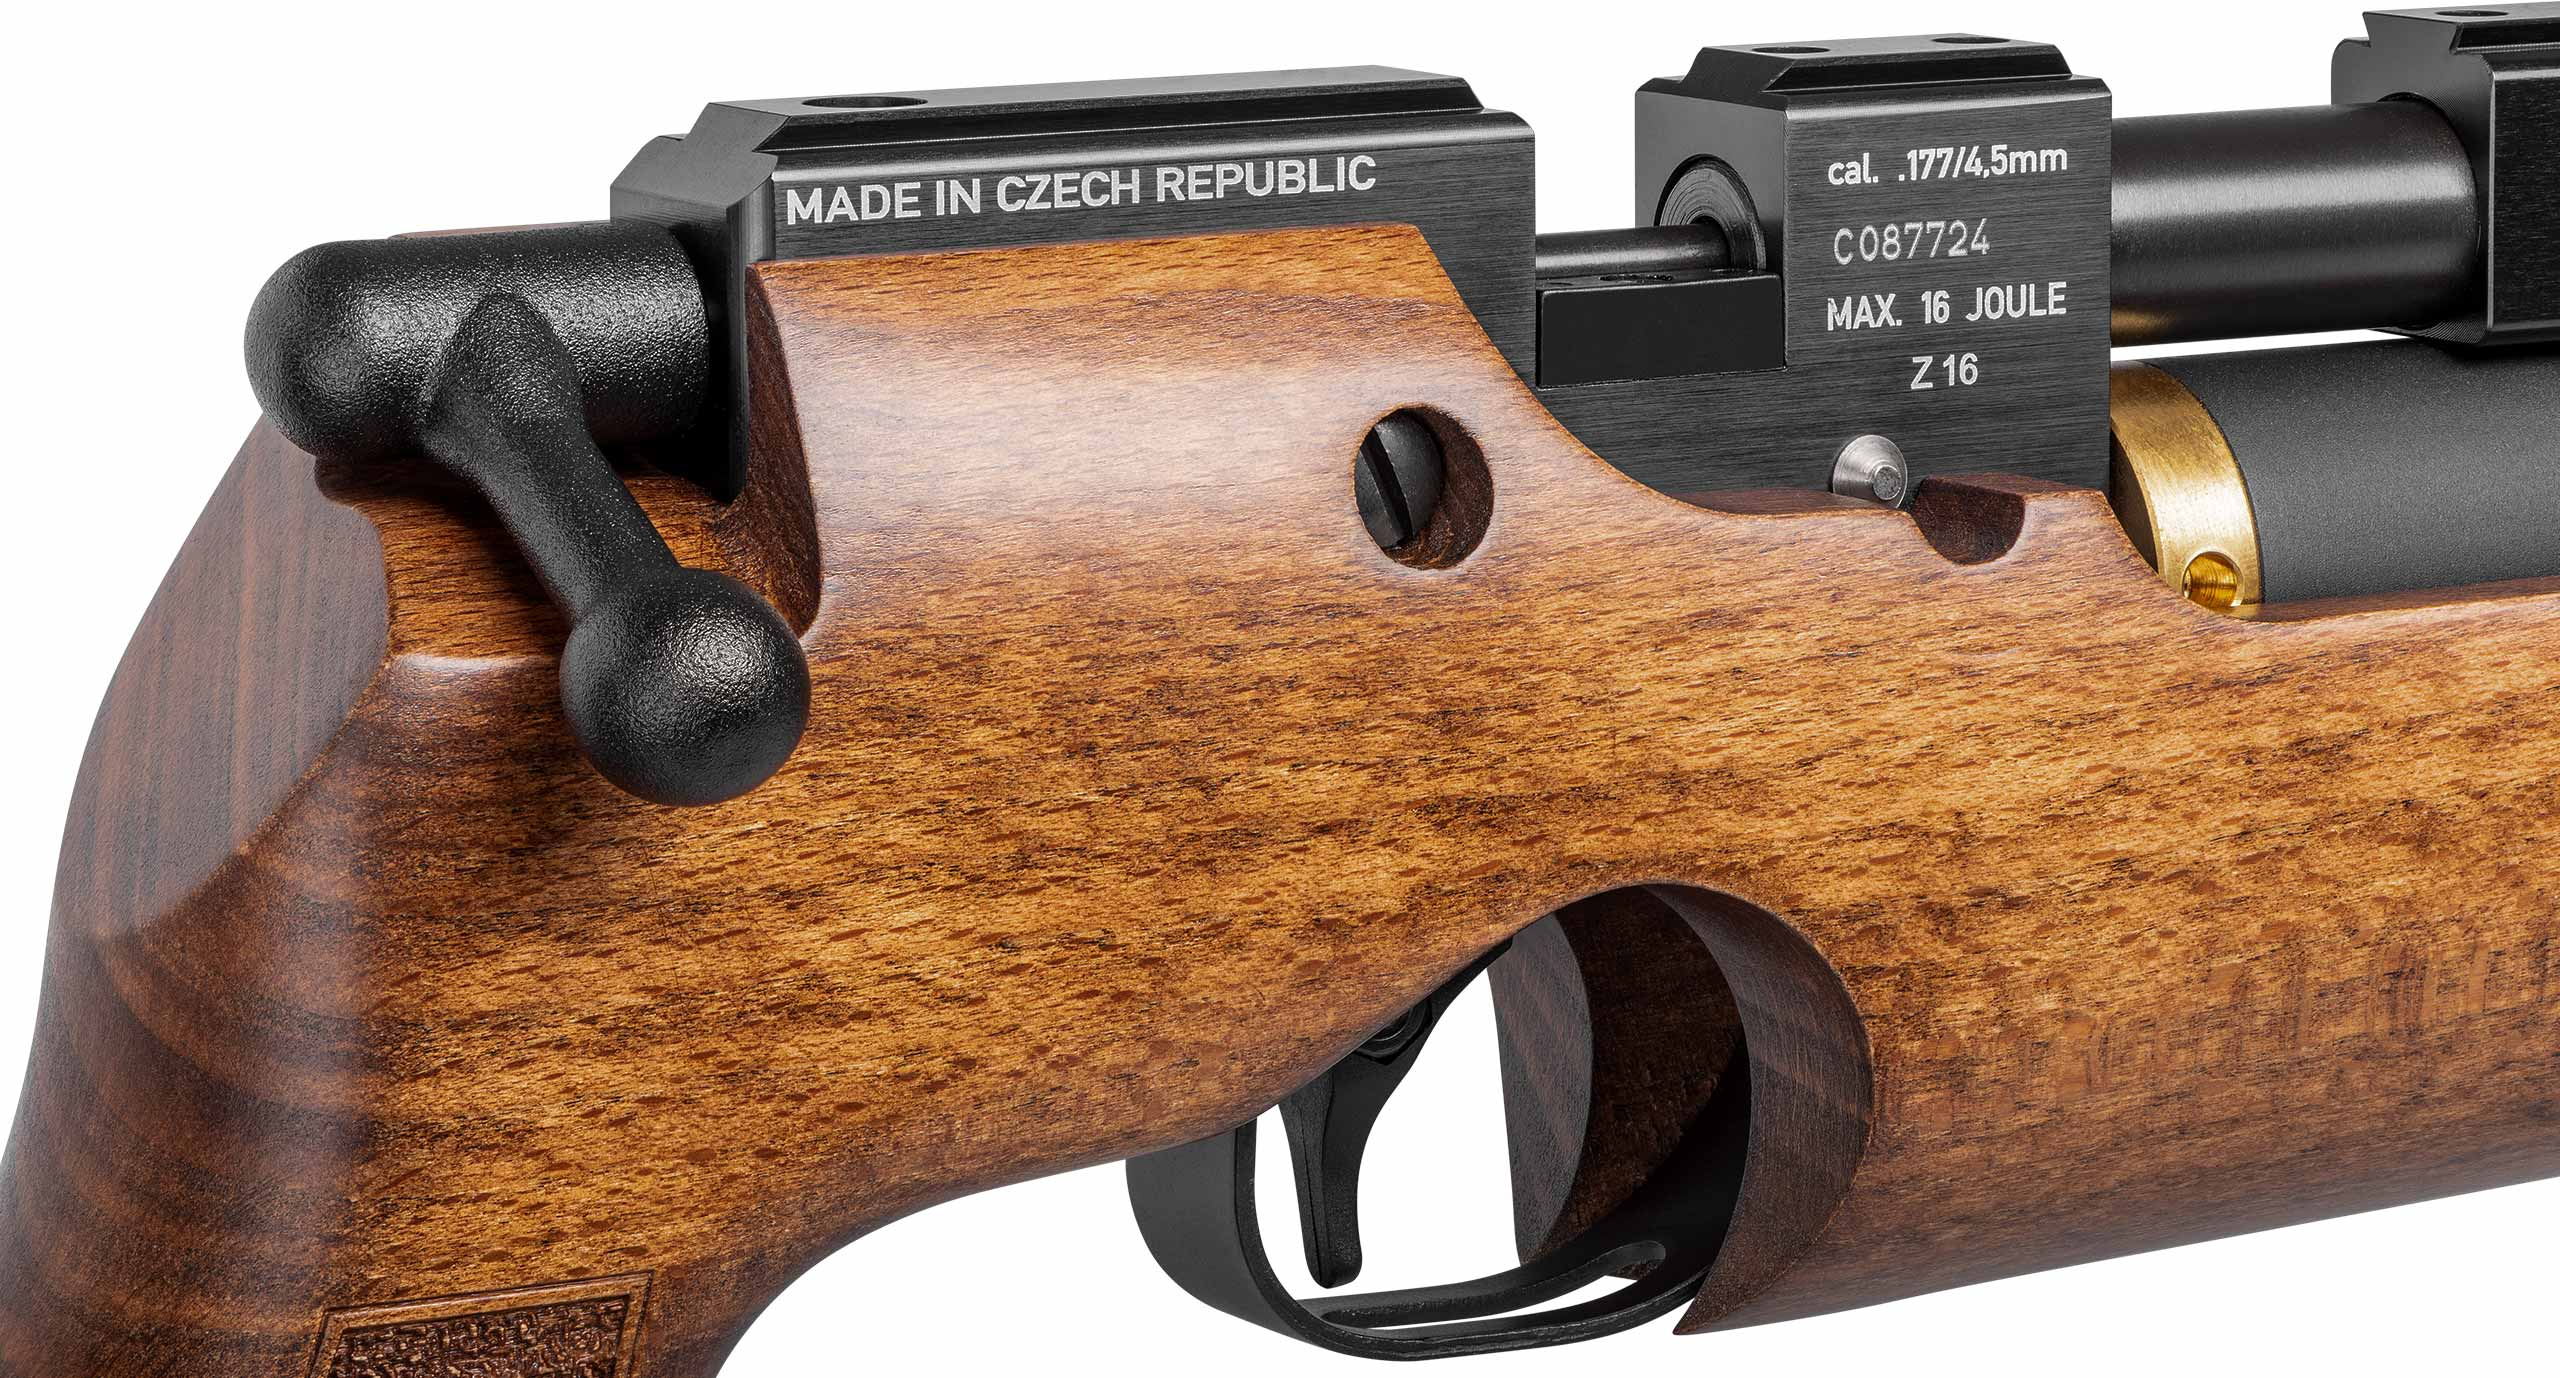 S200 Target Rifle Lever and Action